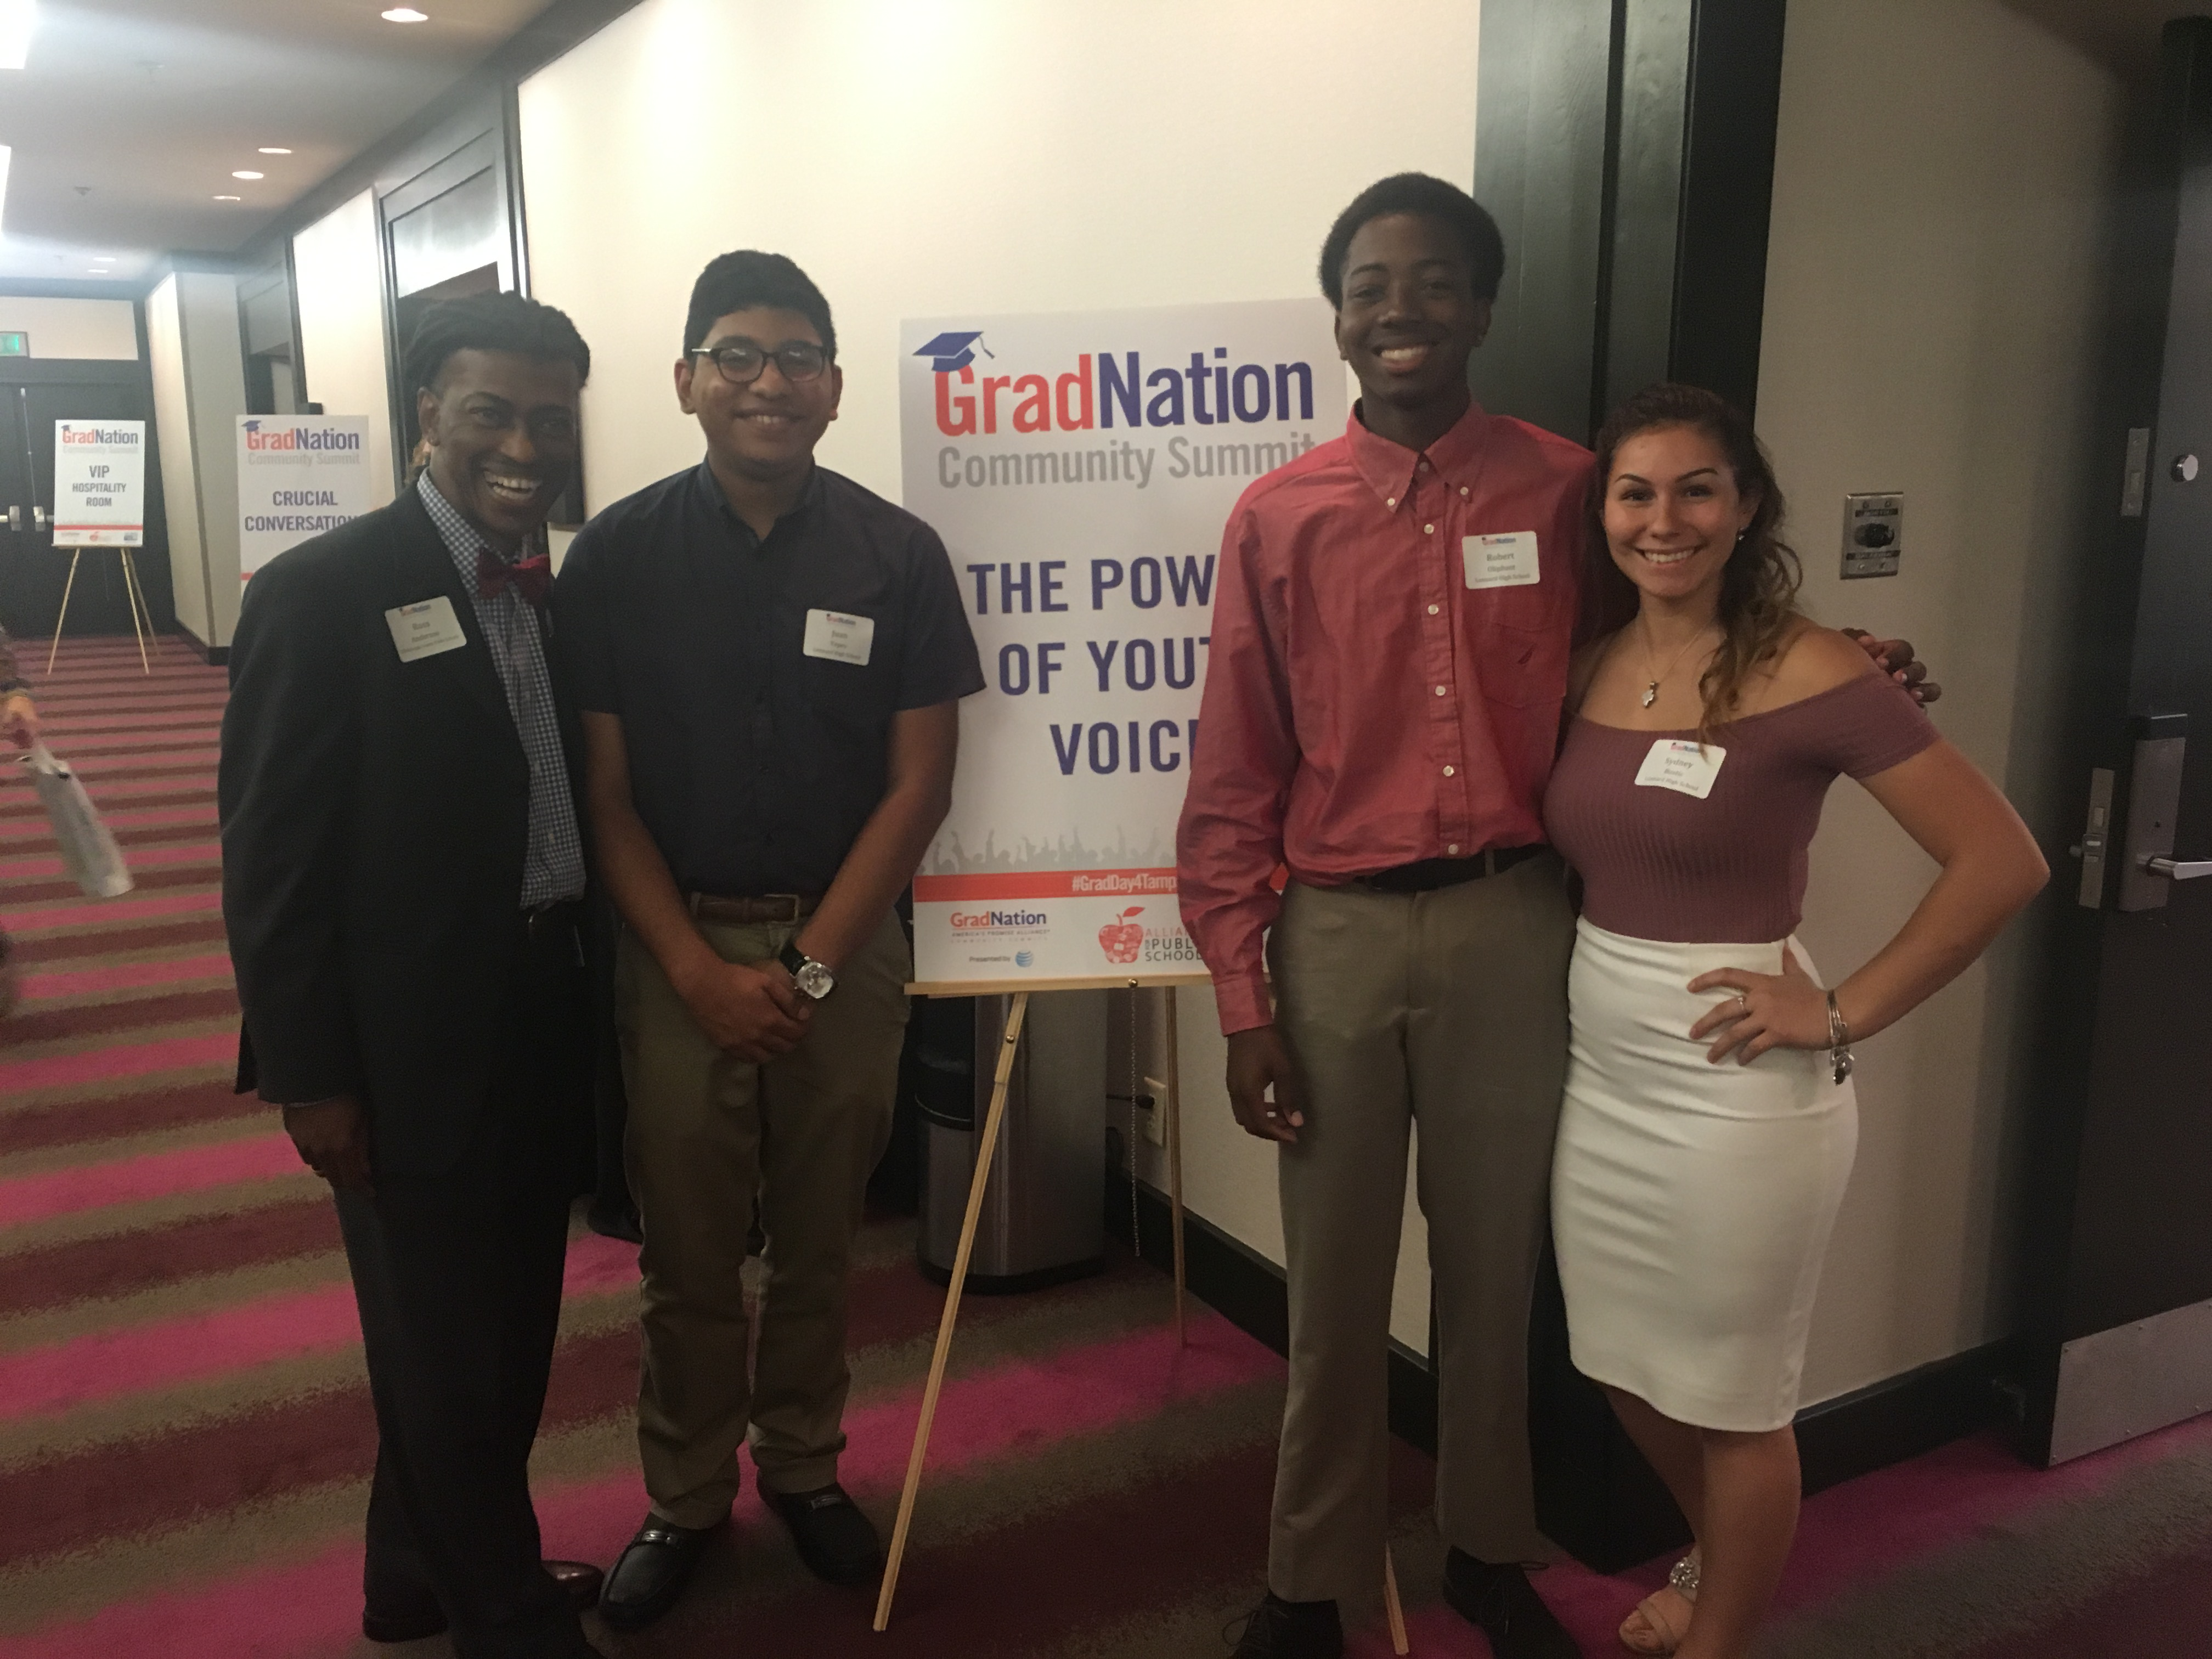 Student facilitators pose outside Power of Youth Voice session